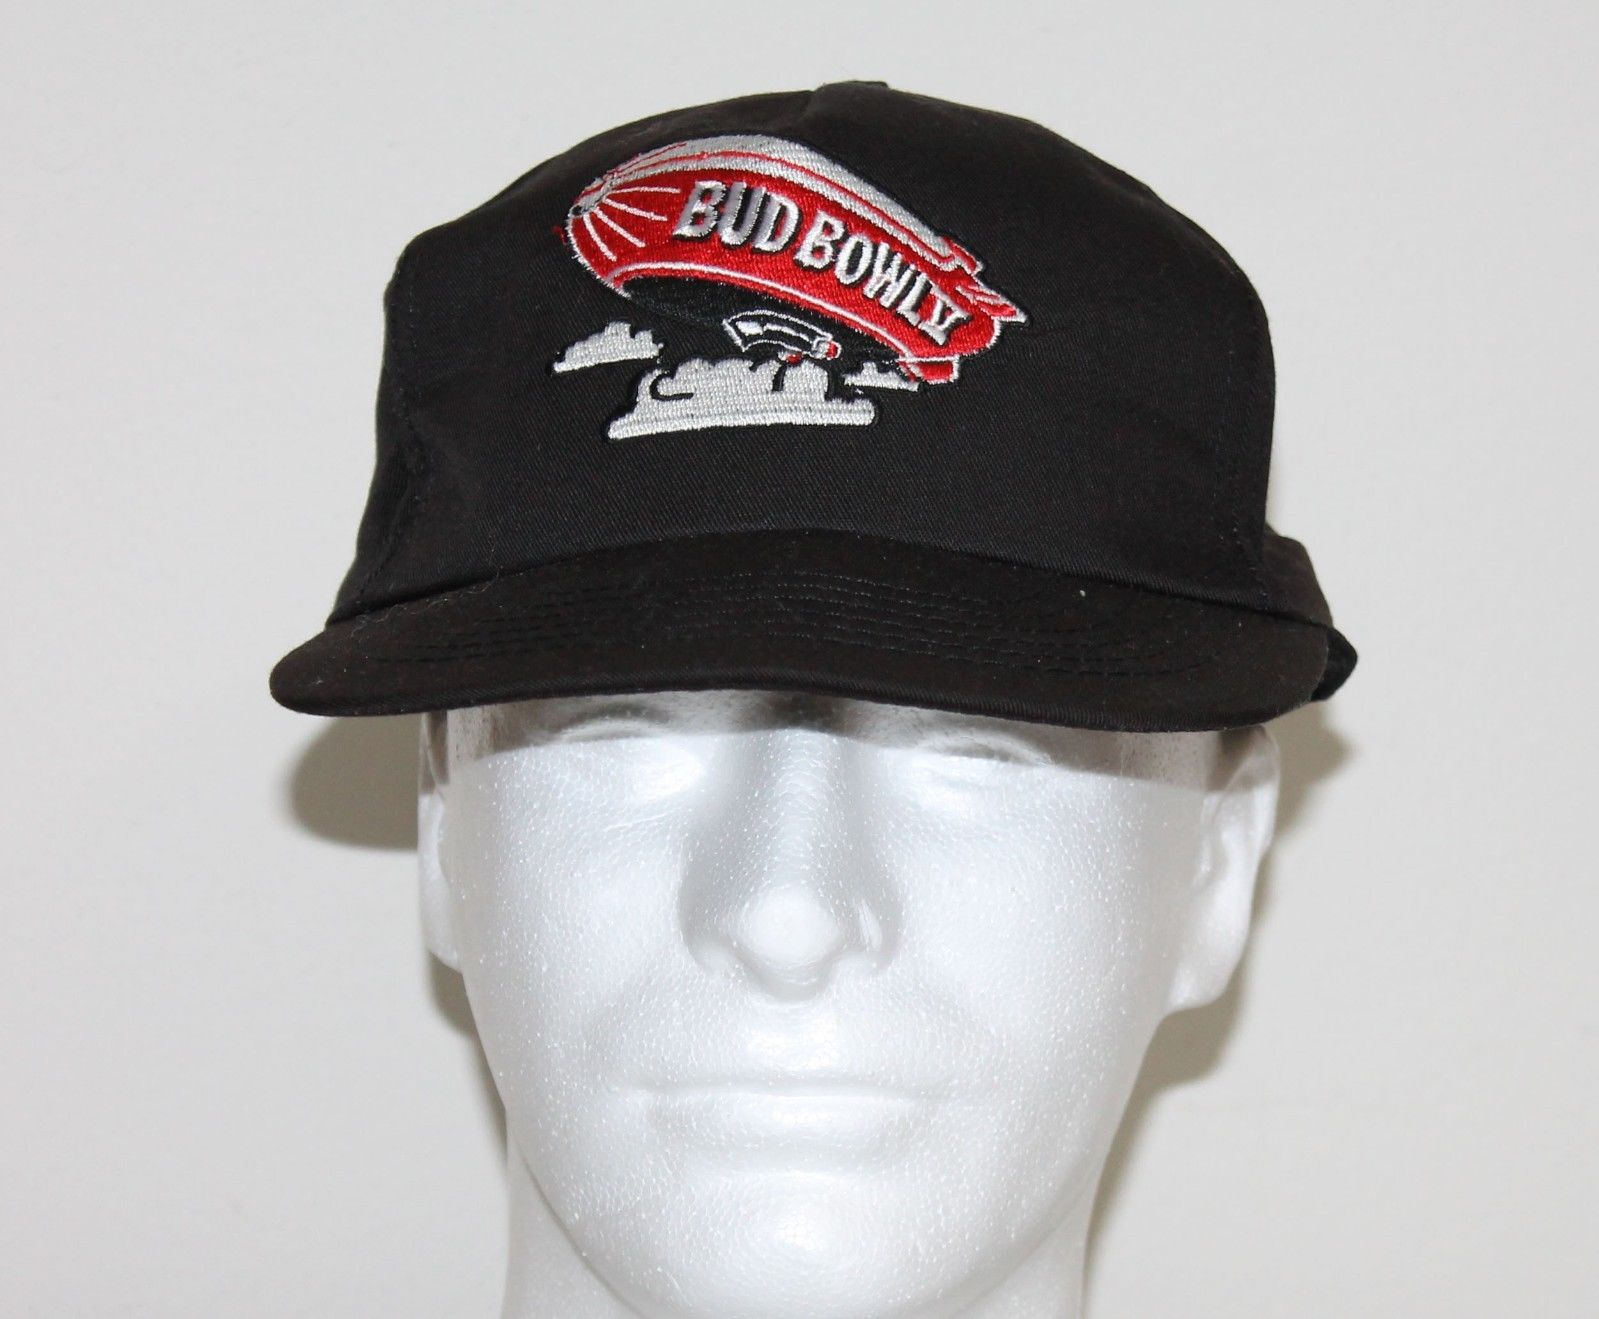 Primary image for Budweiser Bud Bowl 5 V Blimp Snapback Hat Cap NFL Football Superbowl XXVII 27